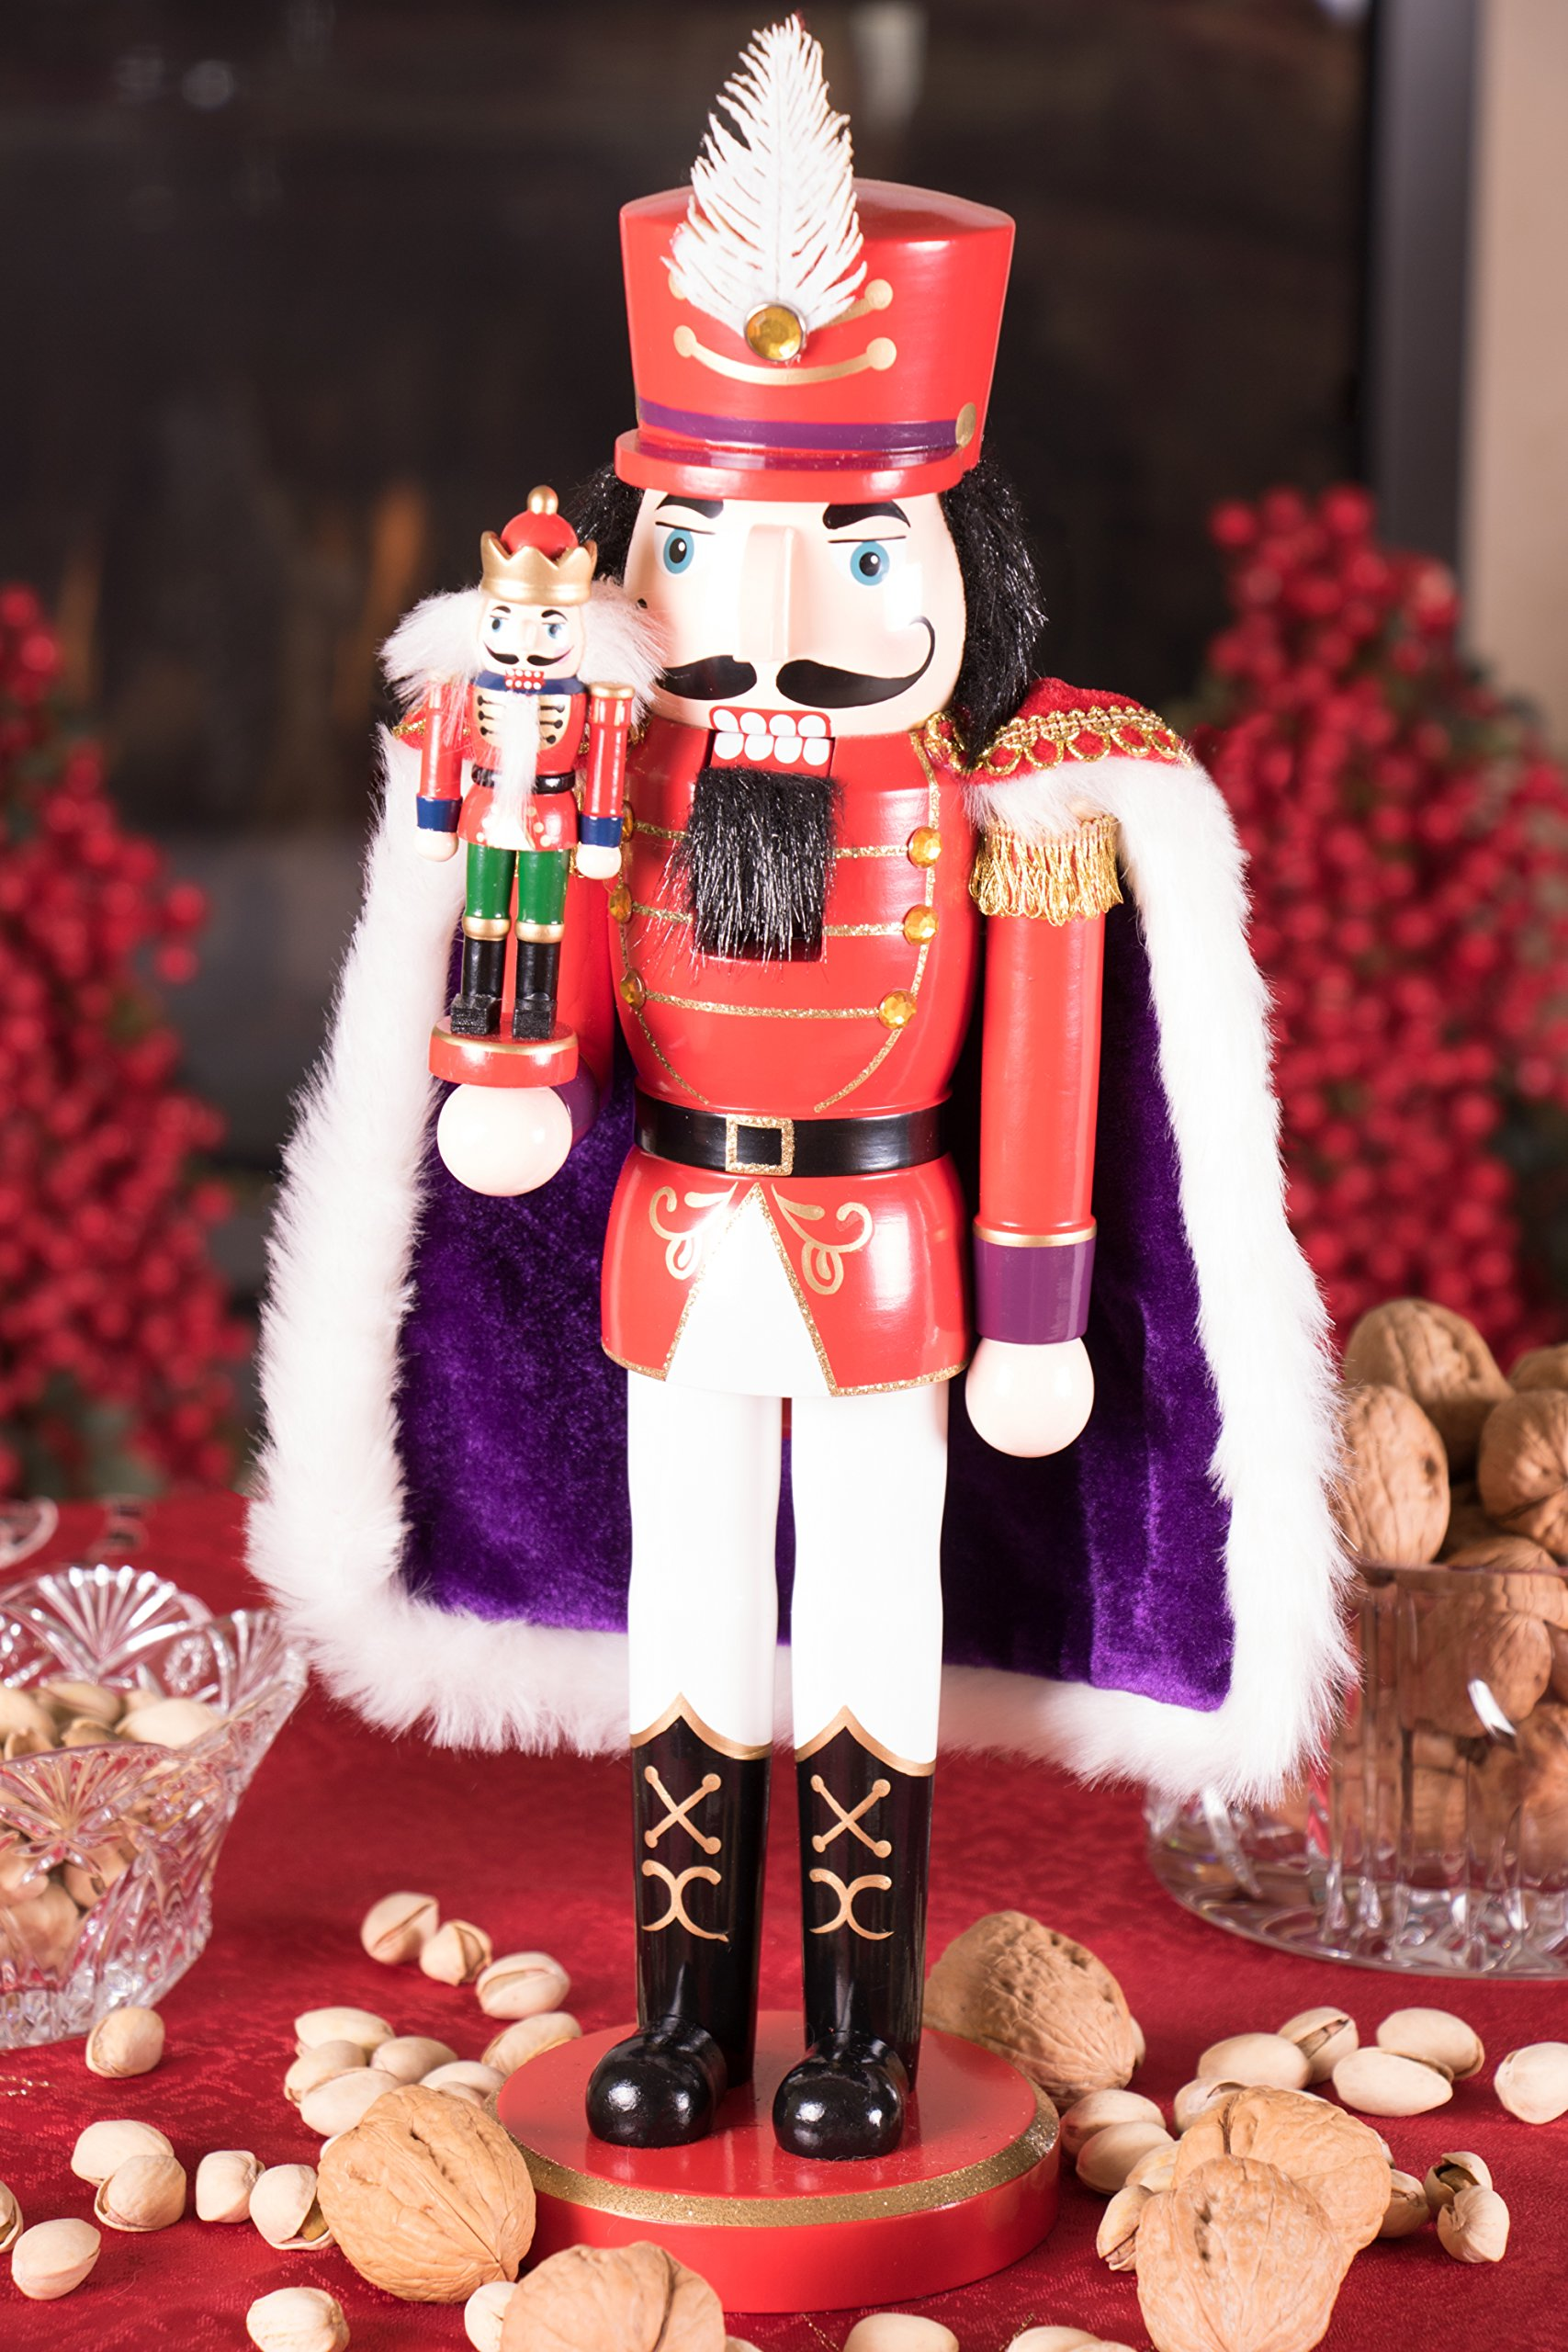 Clever Creations Red Prince Wooden Nutcracker Wearing Purple Cape Holding Toy Nutcracker Gift | Festive Decor | Perfect for Shelves and Tables | 100% Wood | 14'' Tall by Clever Creations (Image #5)